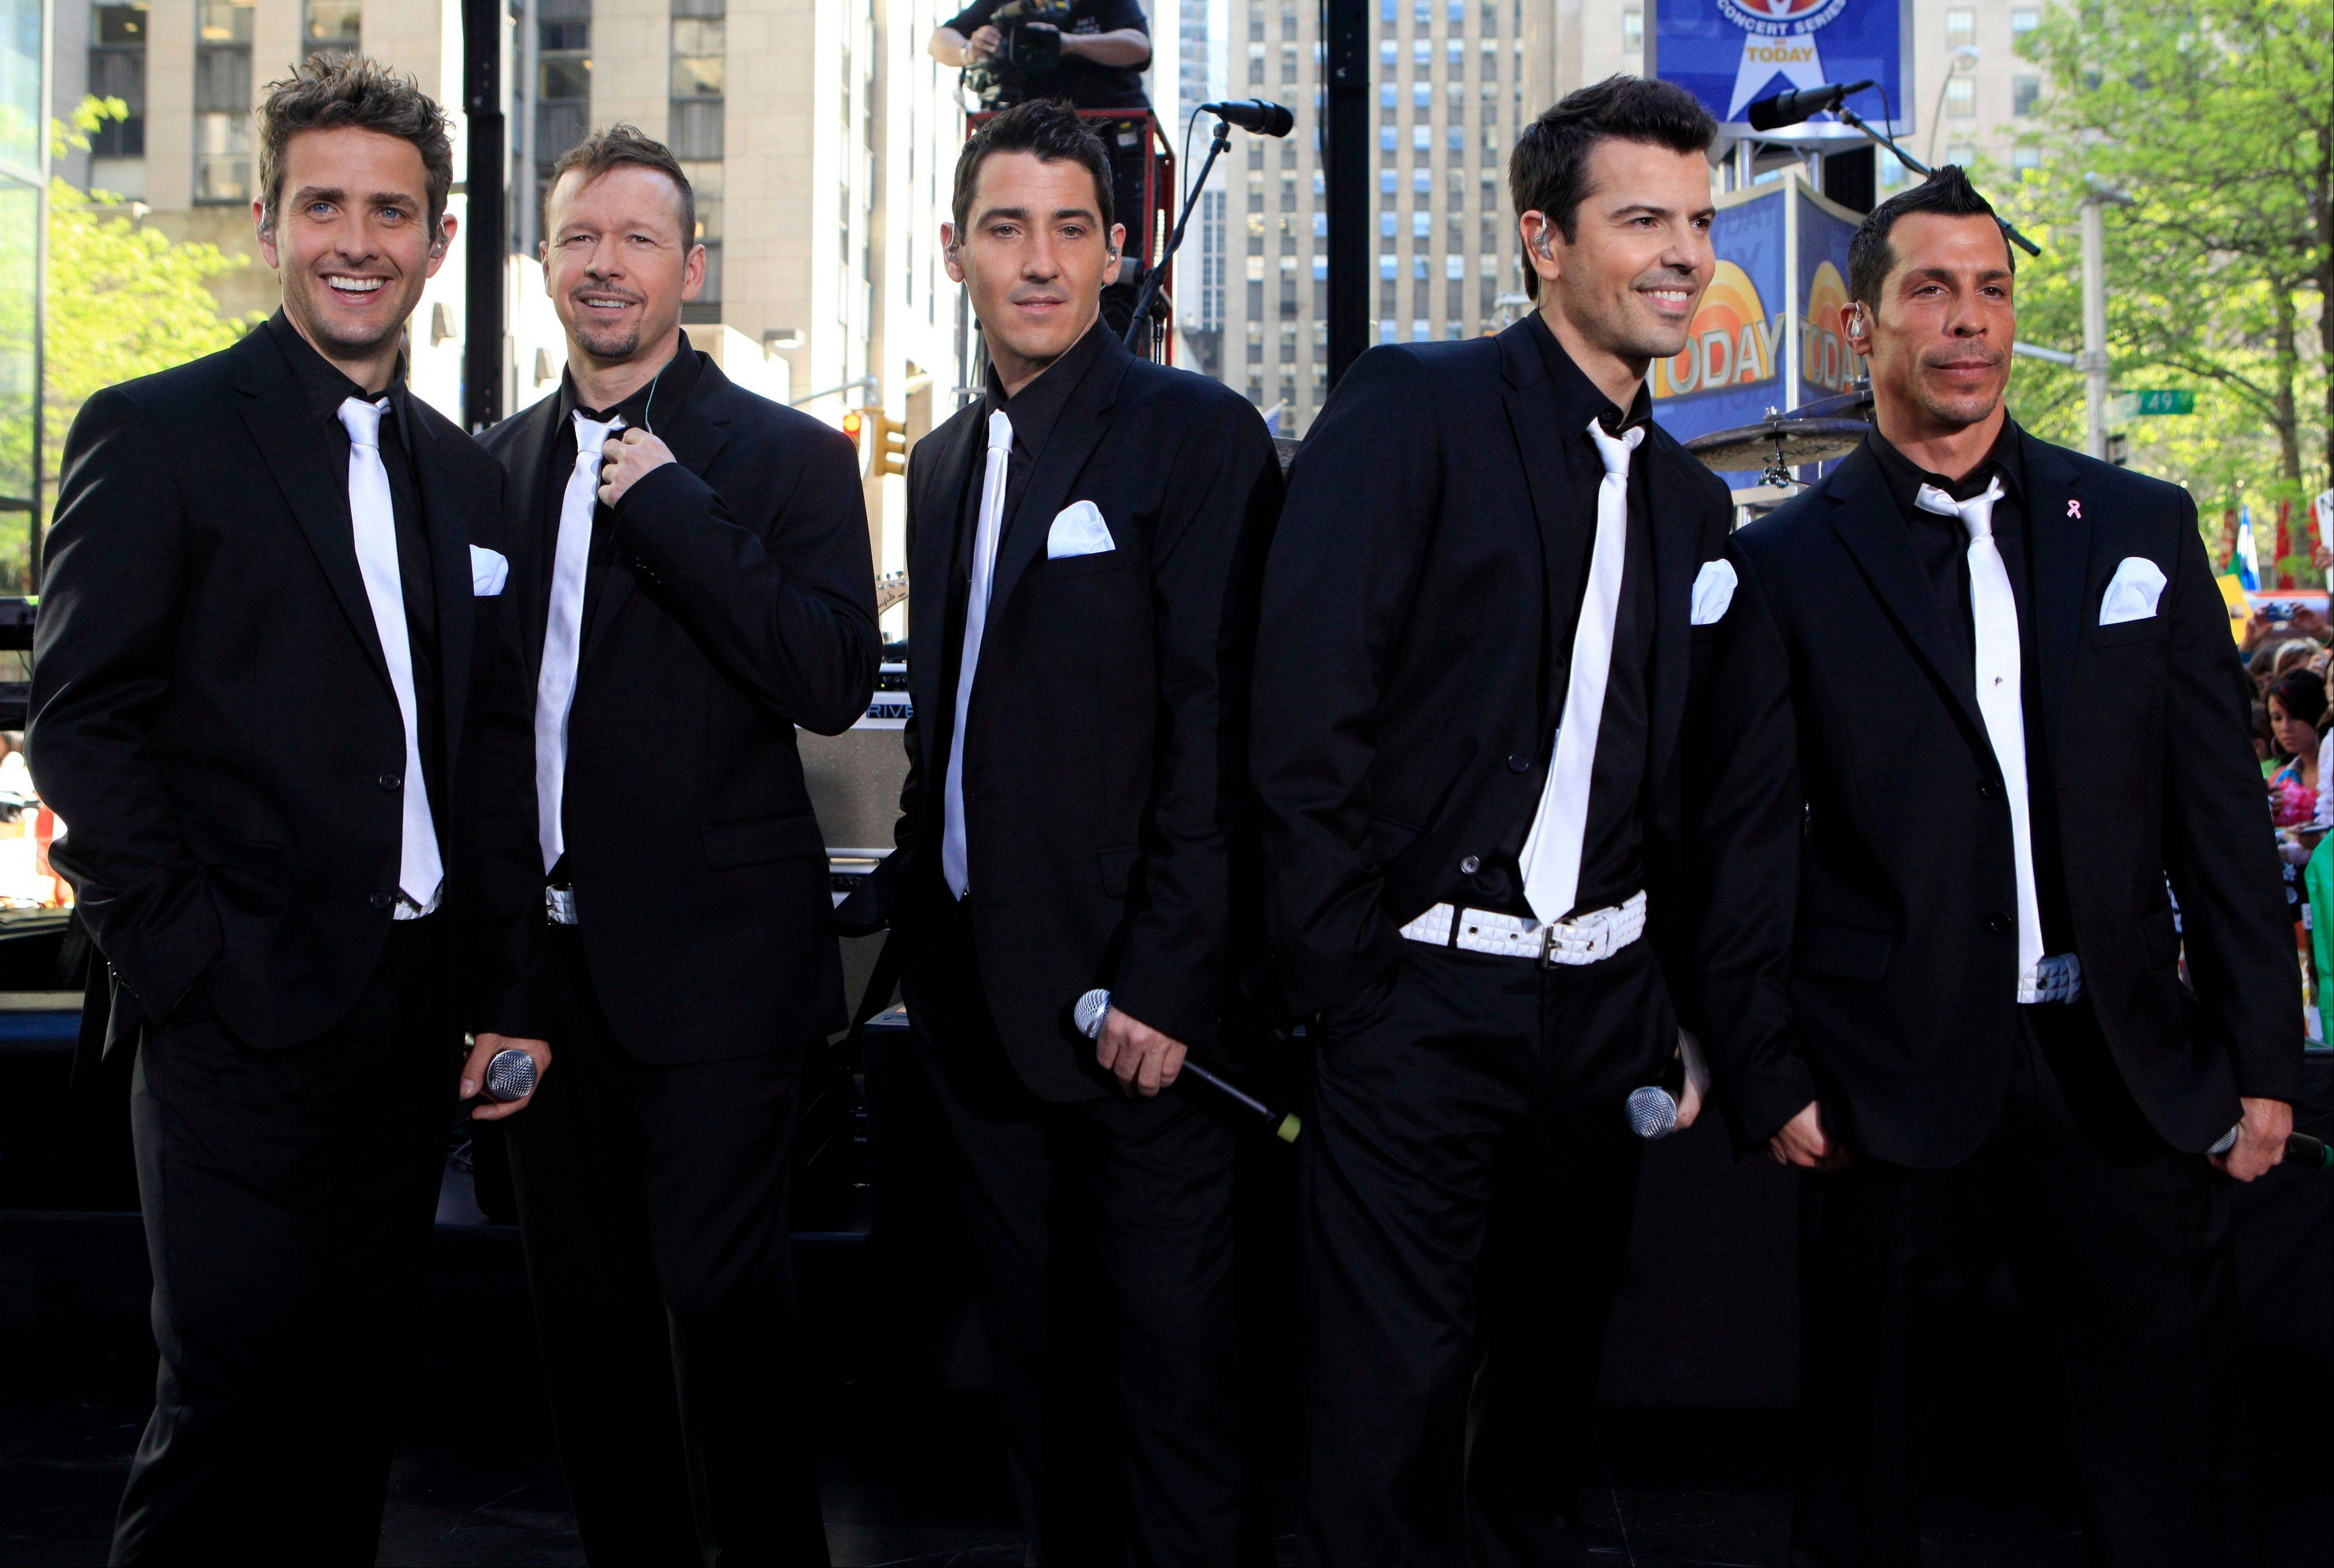 New Kids on the Block is set to perform at the Allstate Arena in Rosemont on the same bill with Boyz II Men and 98 Degrees.